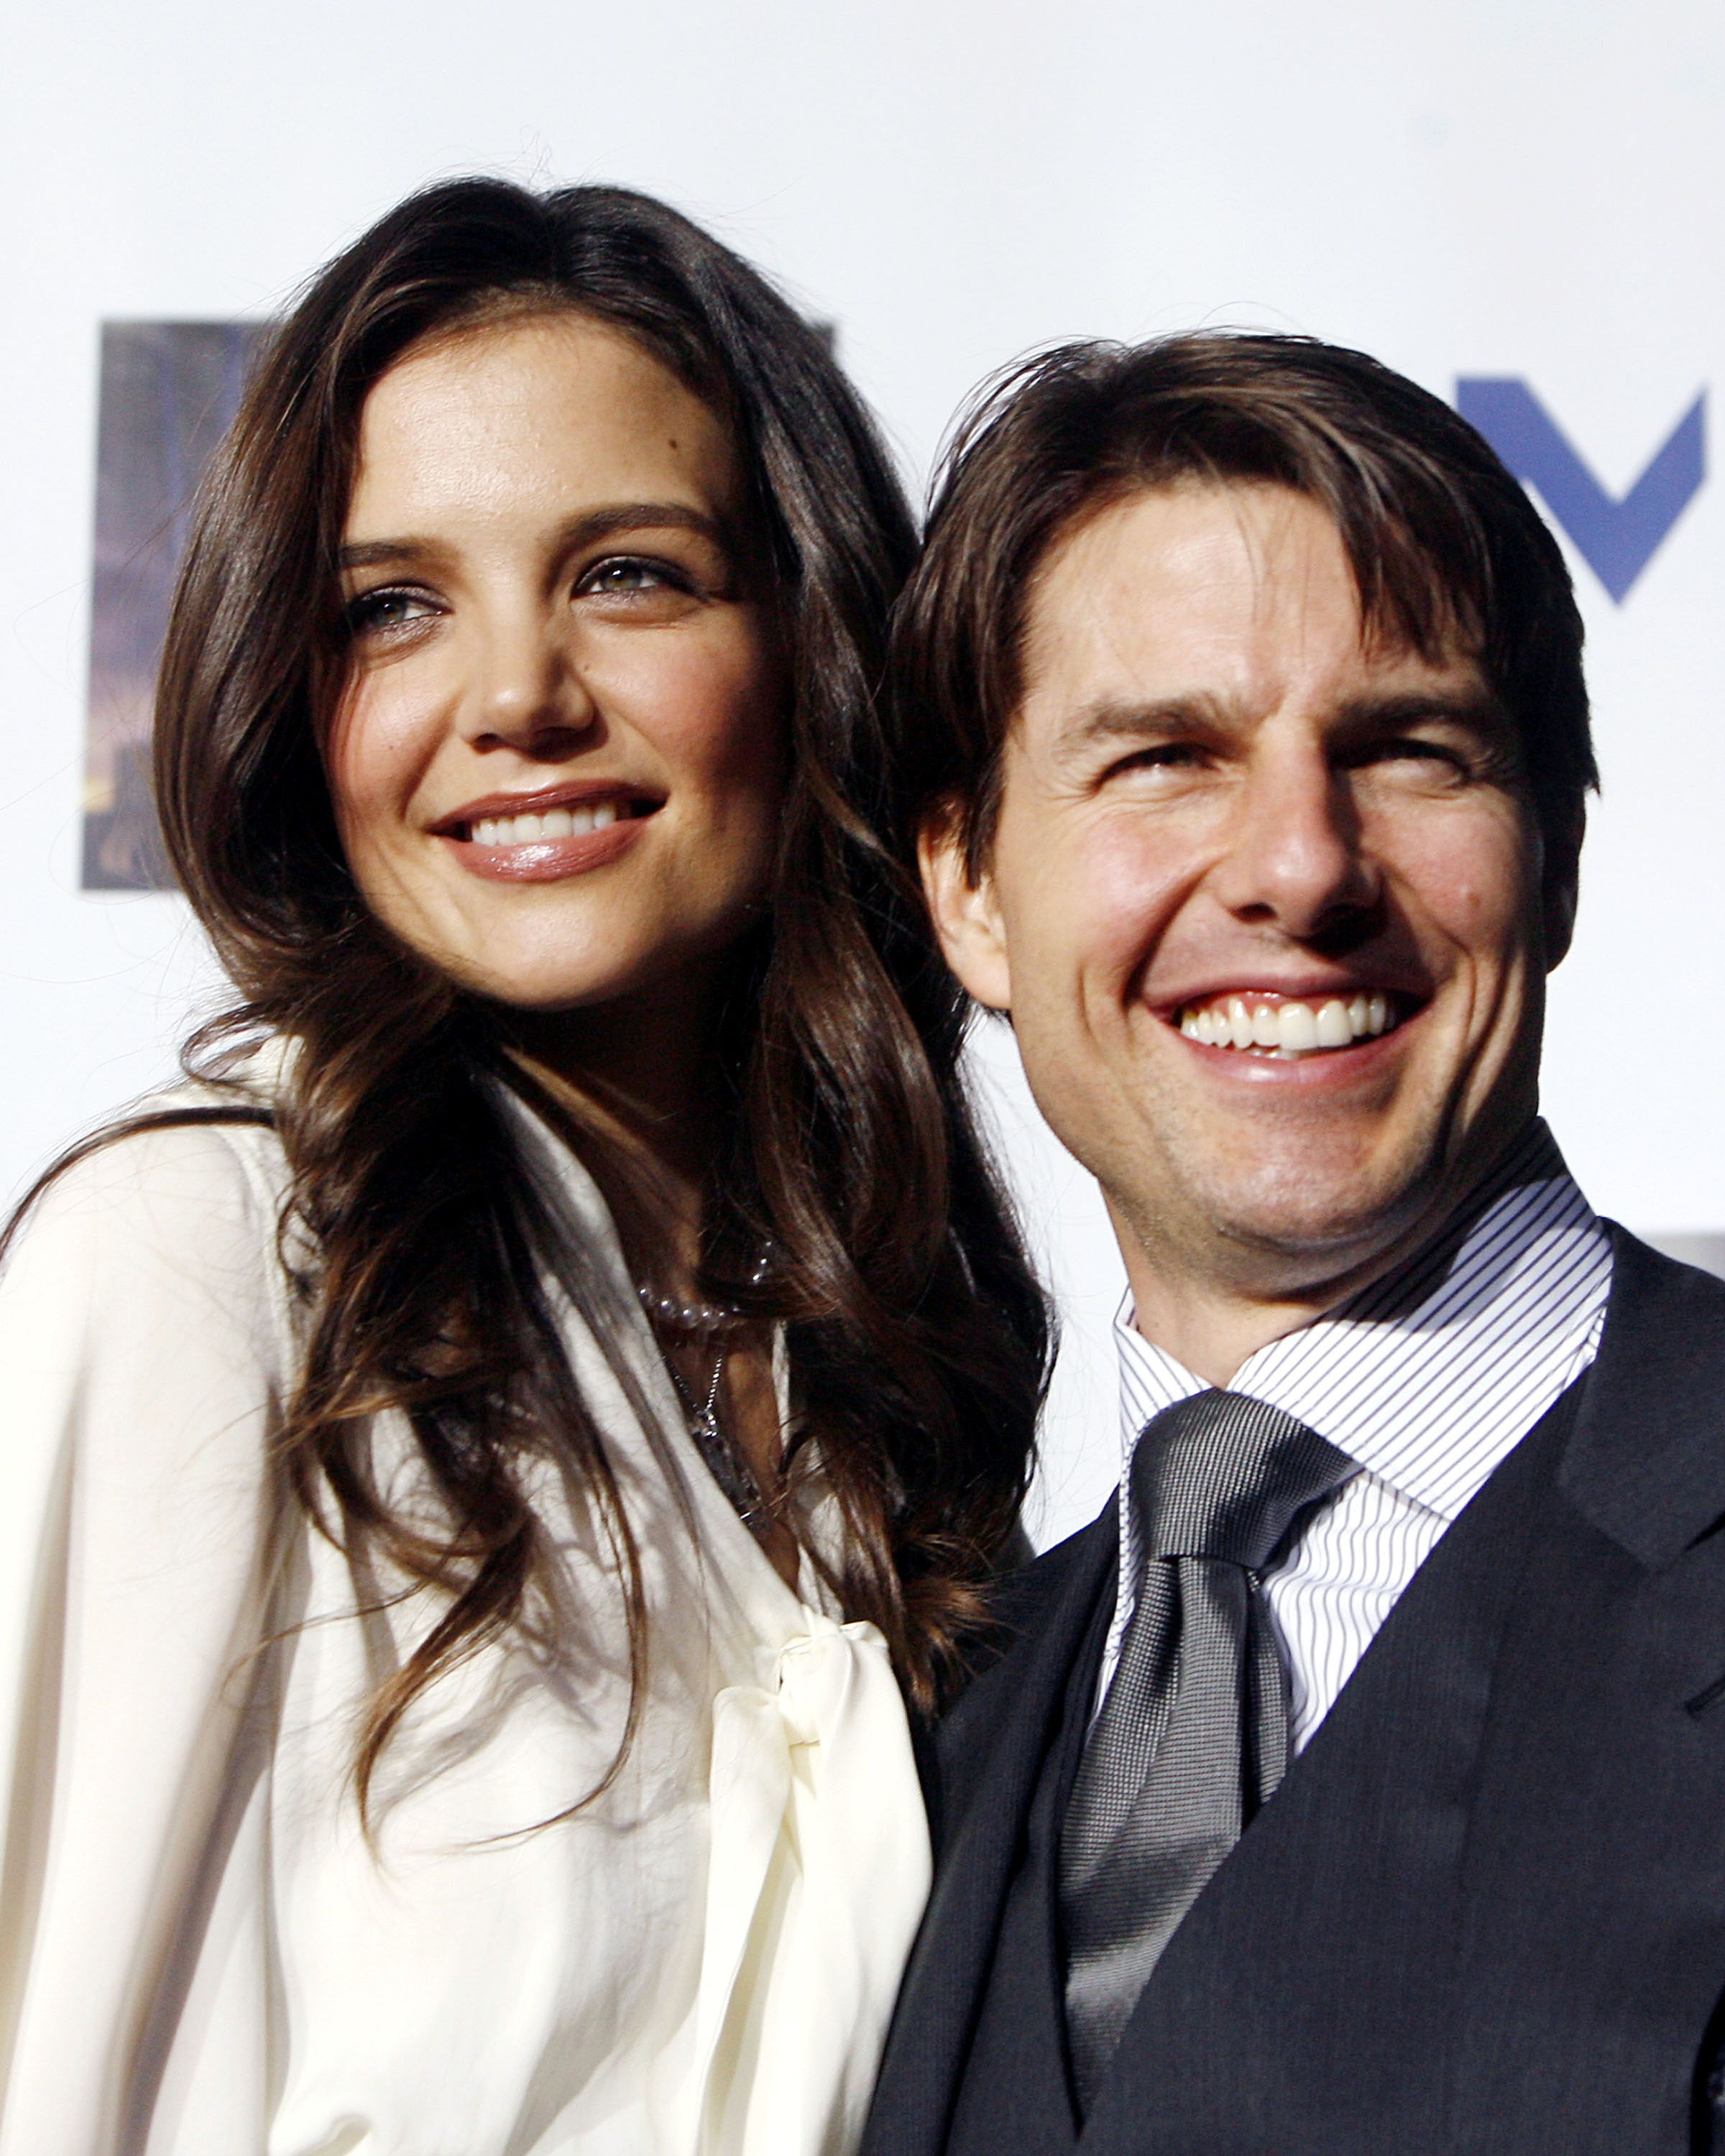 Katie Holmes and Tom Cruise arrive at MENTOR LA's Promise Gala honoring Tom Cruise | Photo: Getty Images